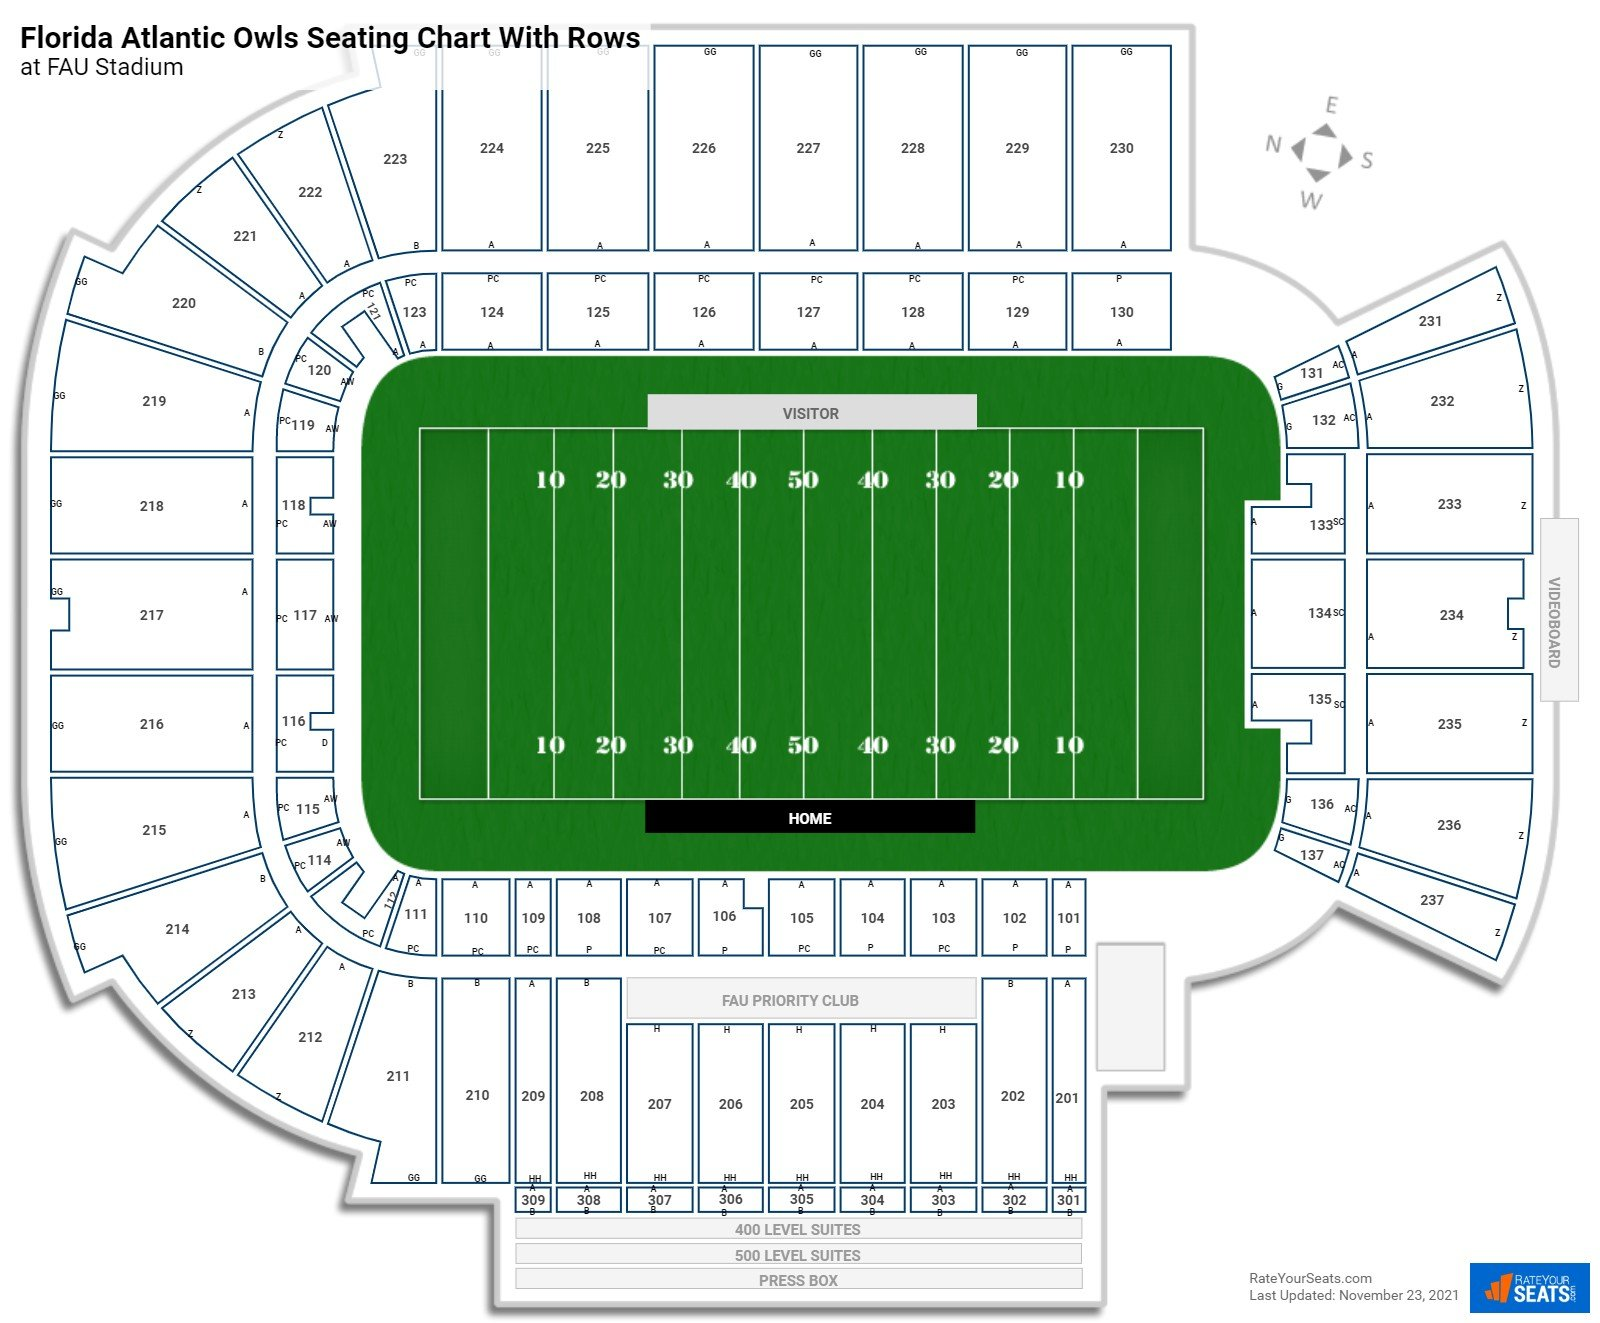 FAU Stadium seating chart with rows